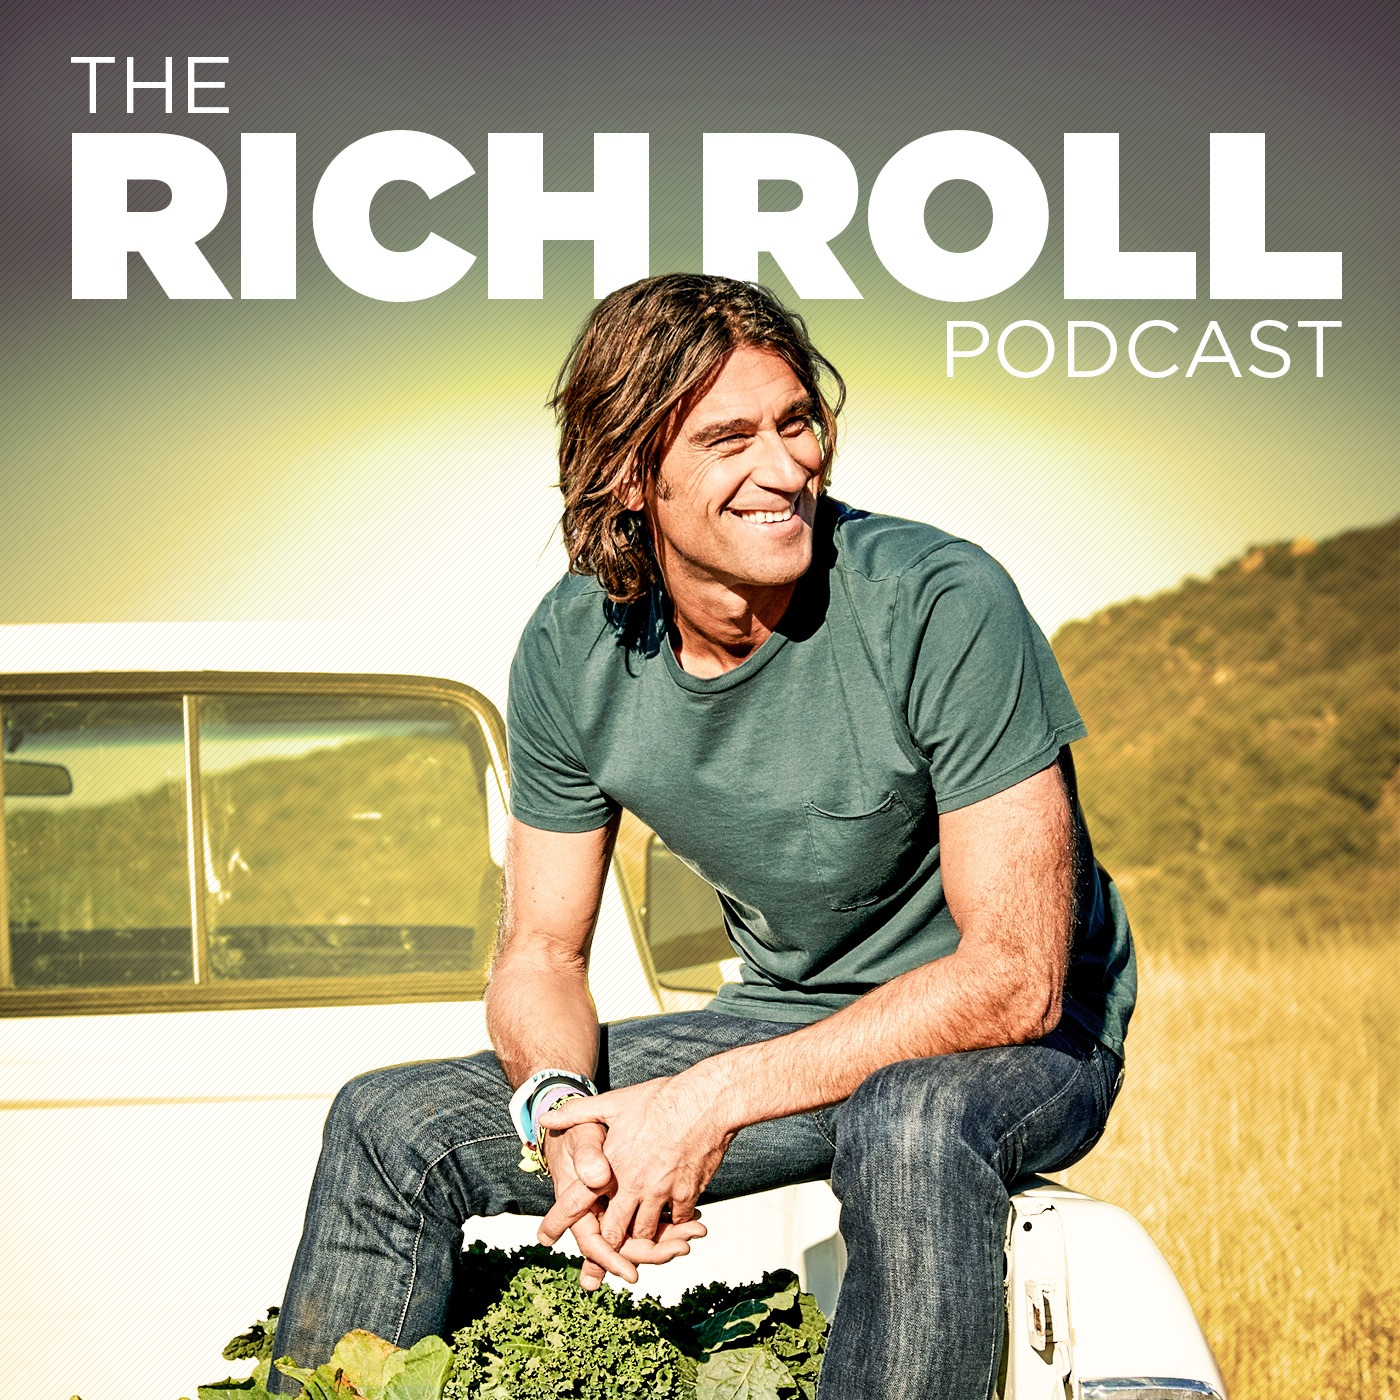 61a93d9d4b7 Newsflash: Check out the latest Rich Roll Podcast featuring Chris Hauth,  one of the world's most respected endurance and ultra endurance coaches.